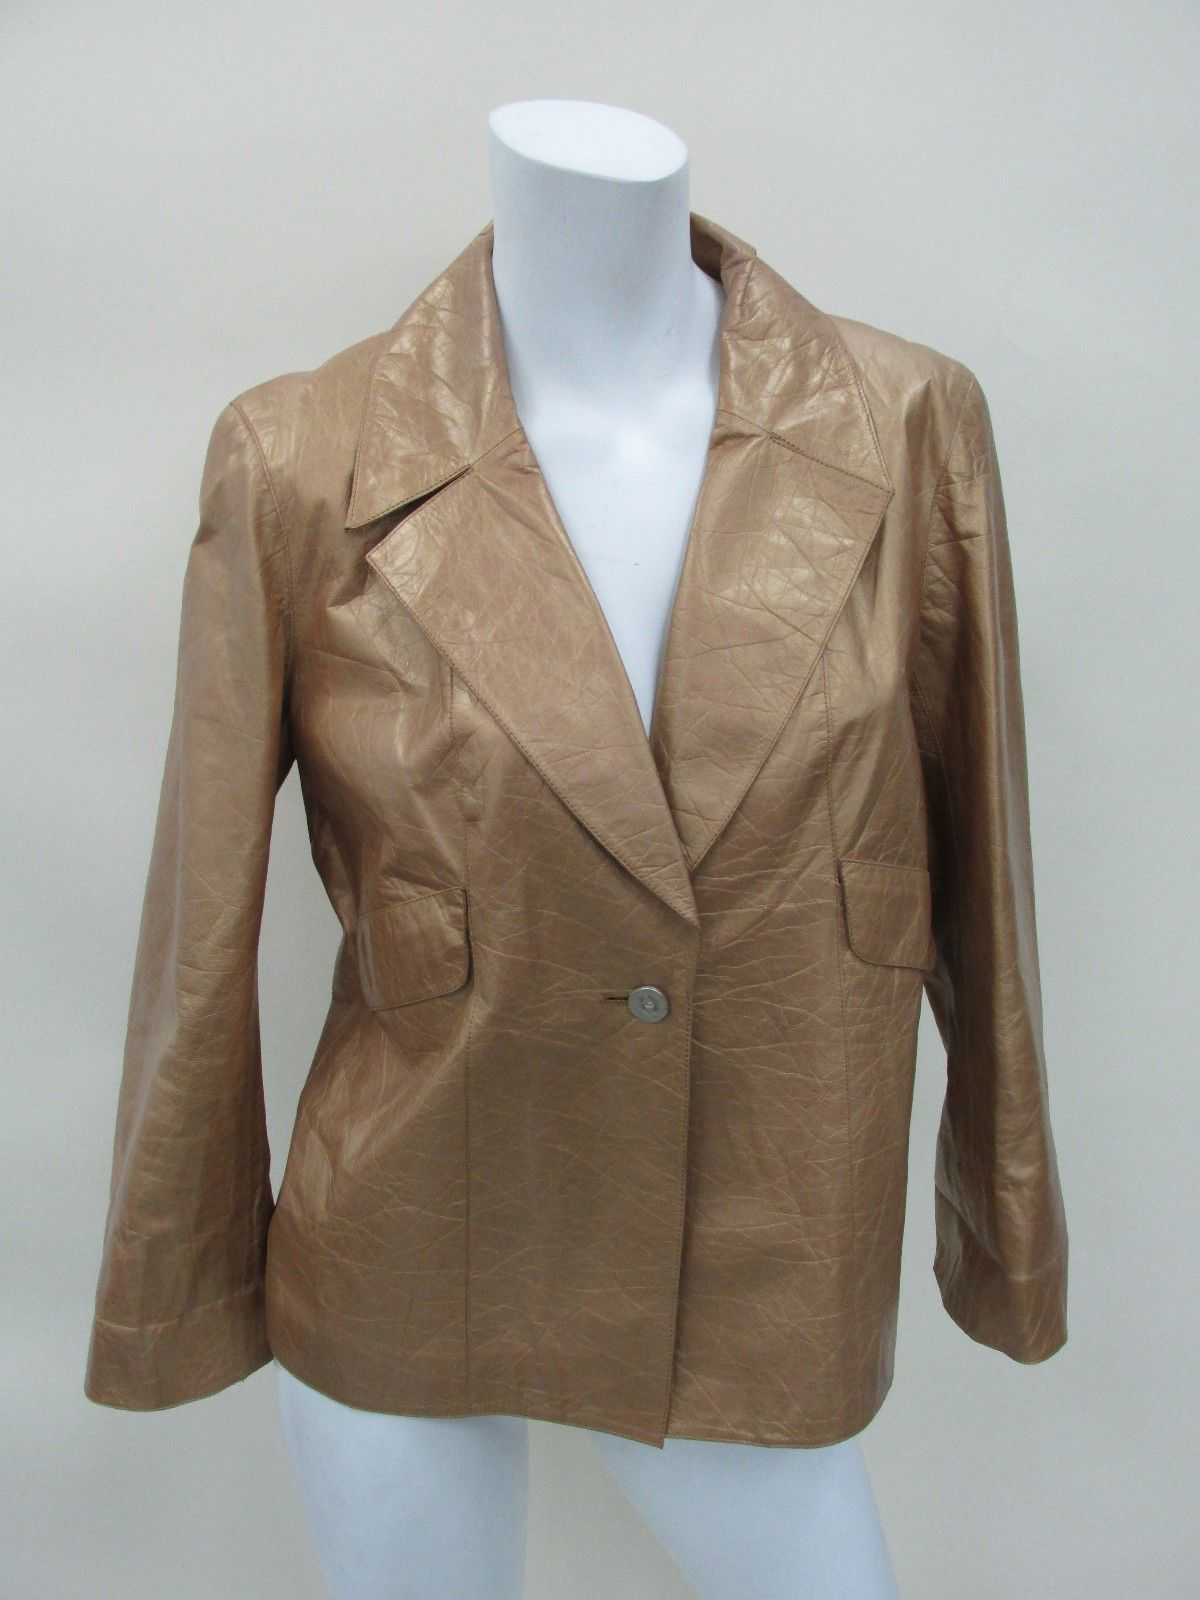 Chanel 06P Women's 100 Leather Gold Coat Jacket Size 42 Made in France | eBay